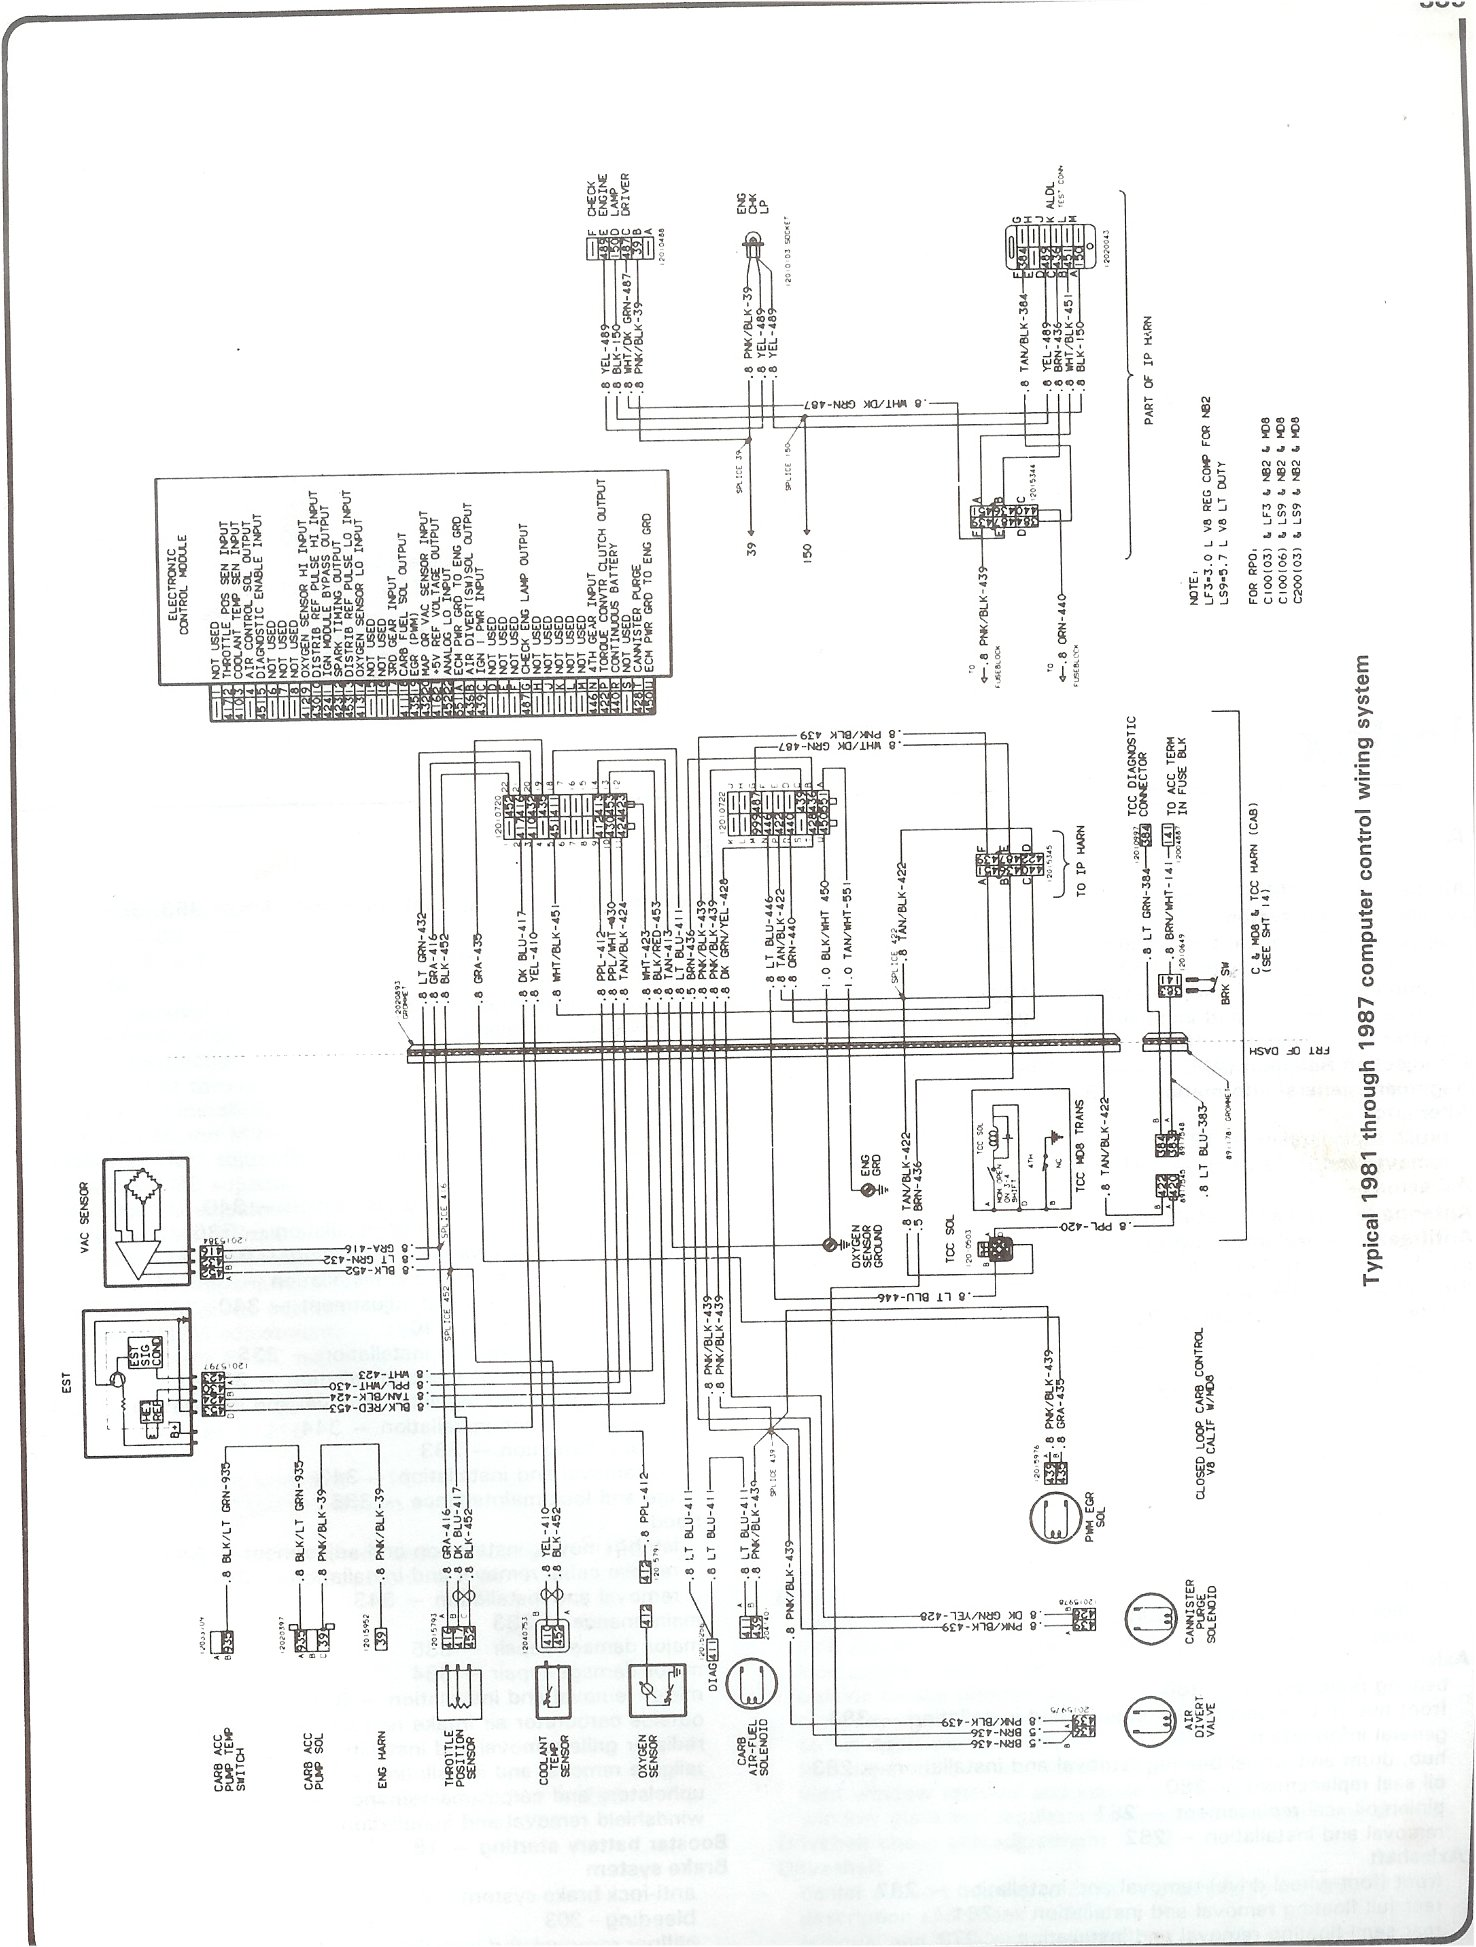 81 87_computer_control_wiring complete 73 87 wiring diagrams 1983 chevy k10 wiring harness at bayanpartner.co